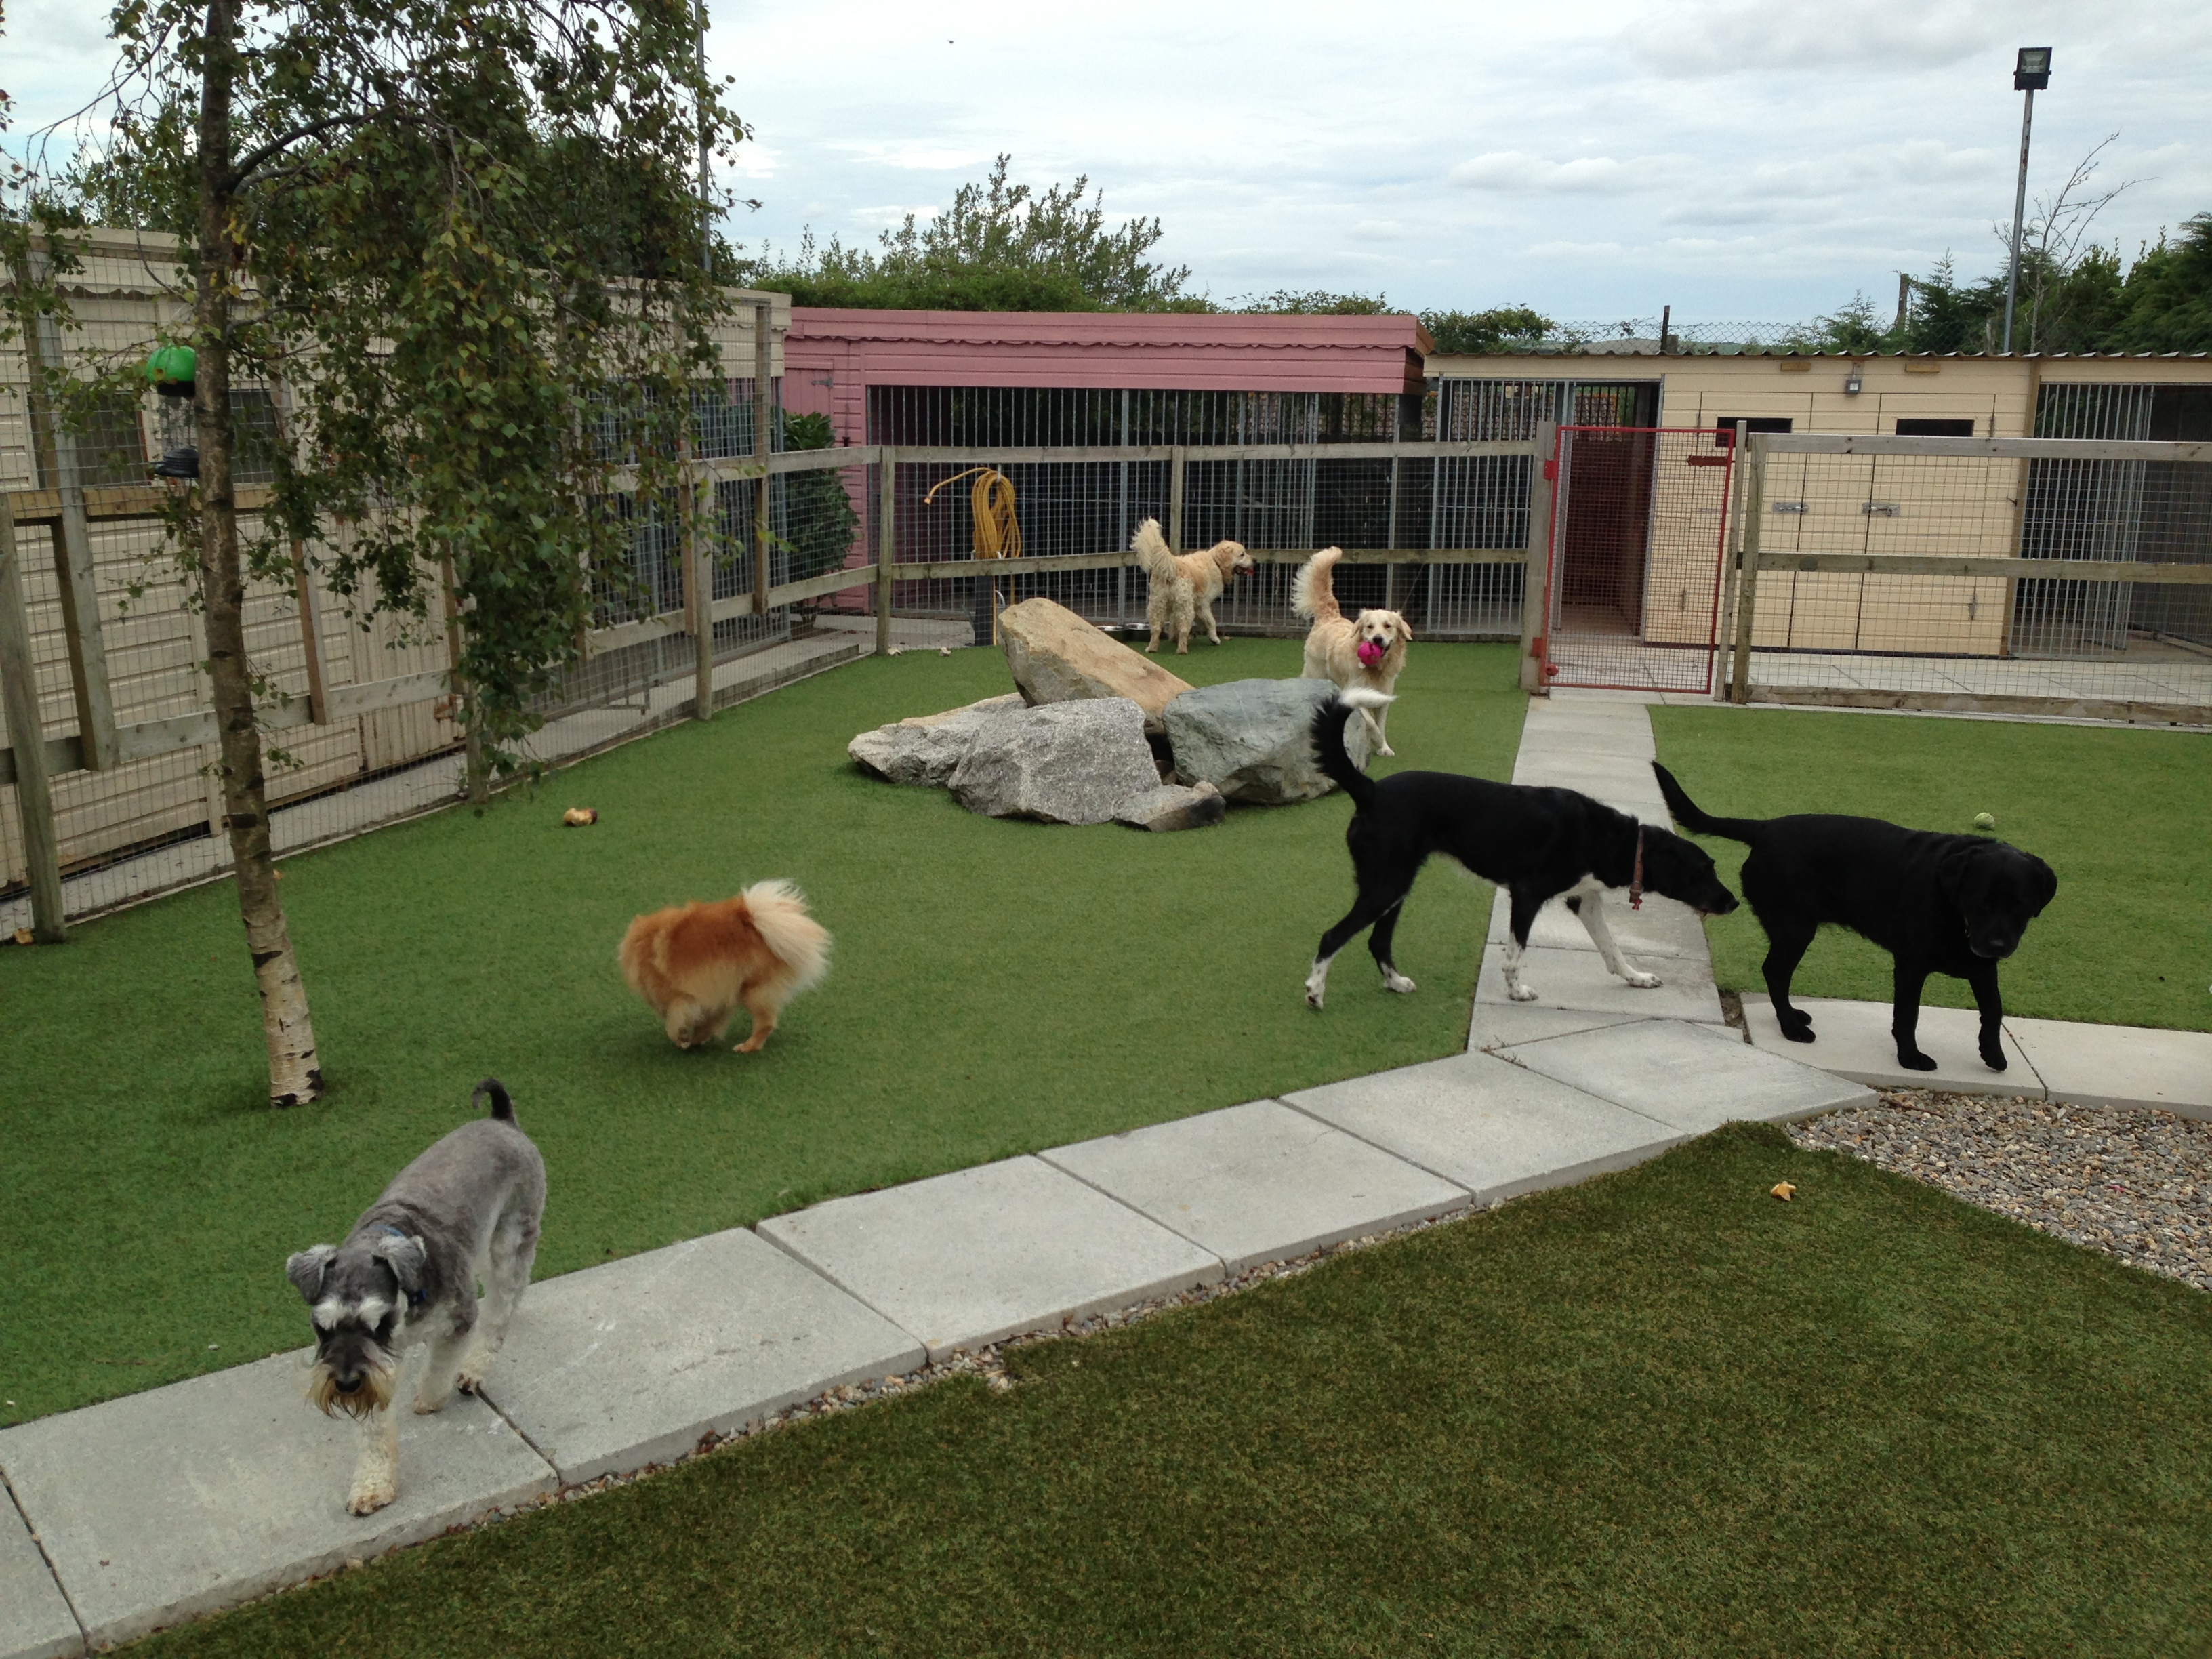 How to select the best pet boarding facilities liveblog spot for Boarding facility for dogs